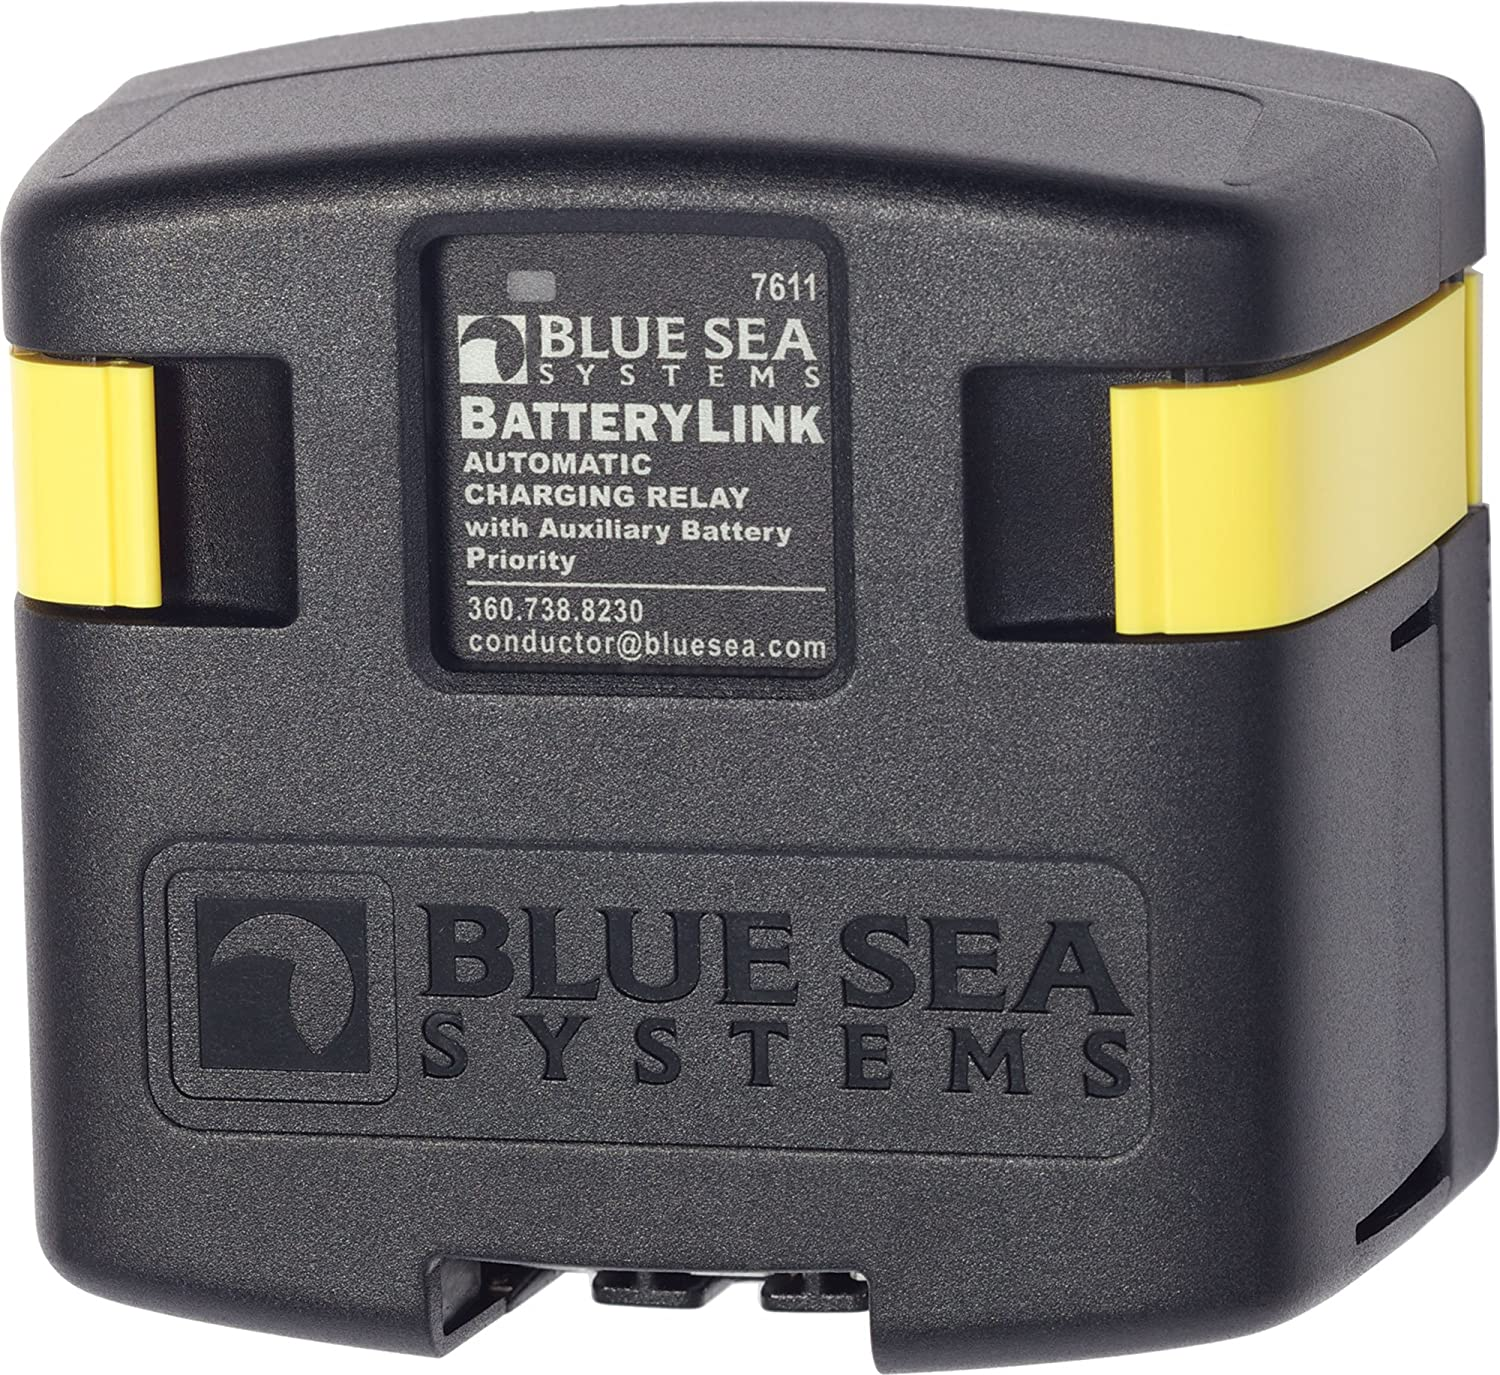 Blue Sea Systems Batterylink 12v 24v Dc 120a Automatic Battery Isolator Marine Further 2 Alternator 3 Wiring Charging Relay Sports Outdoors